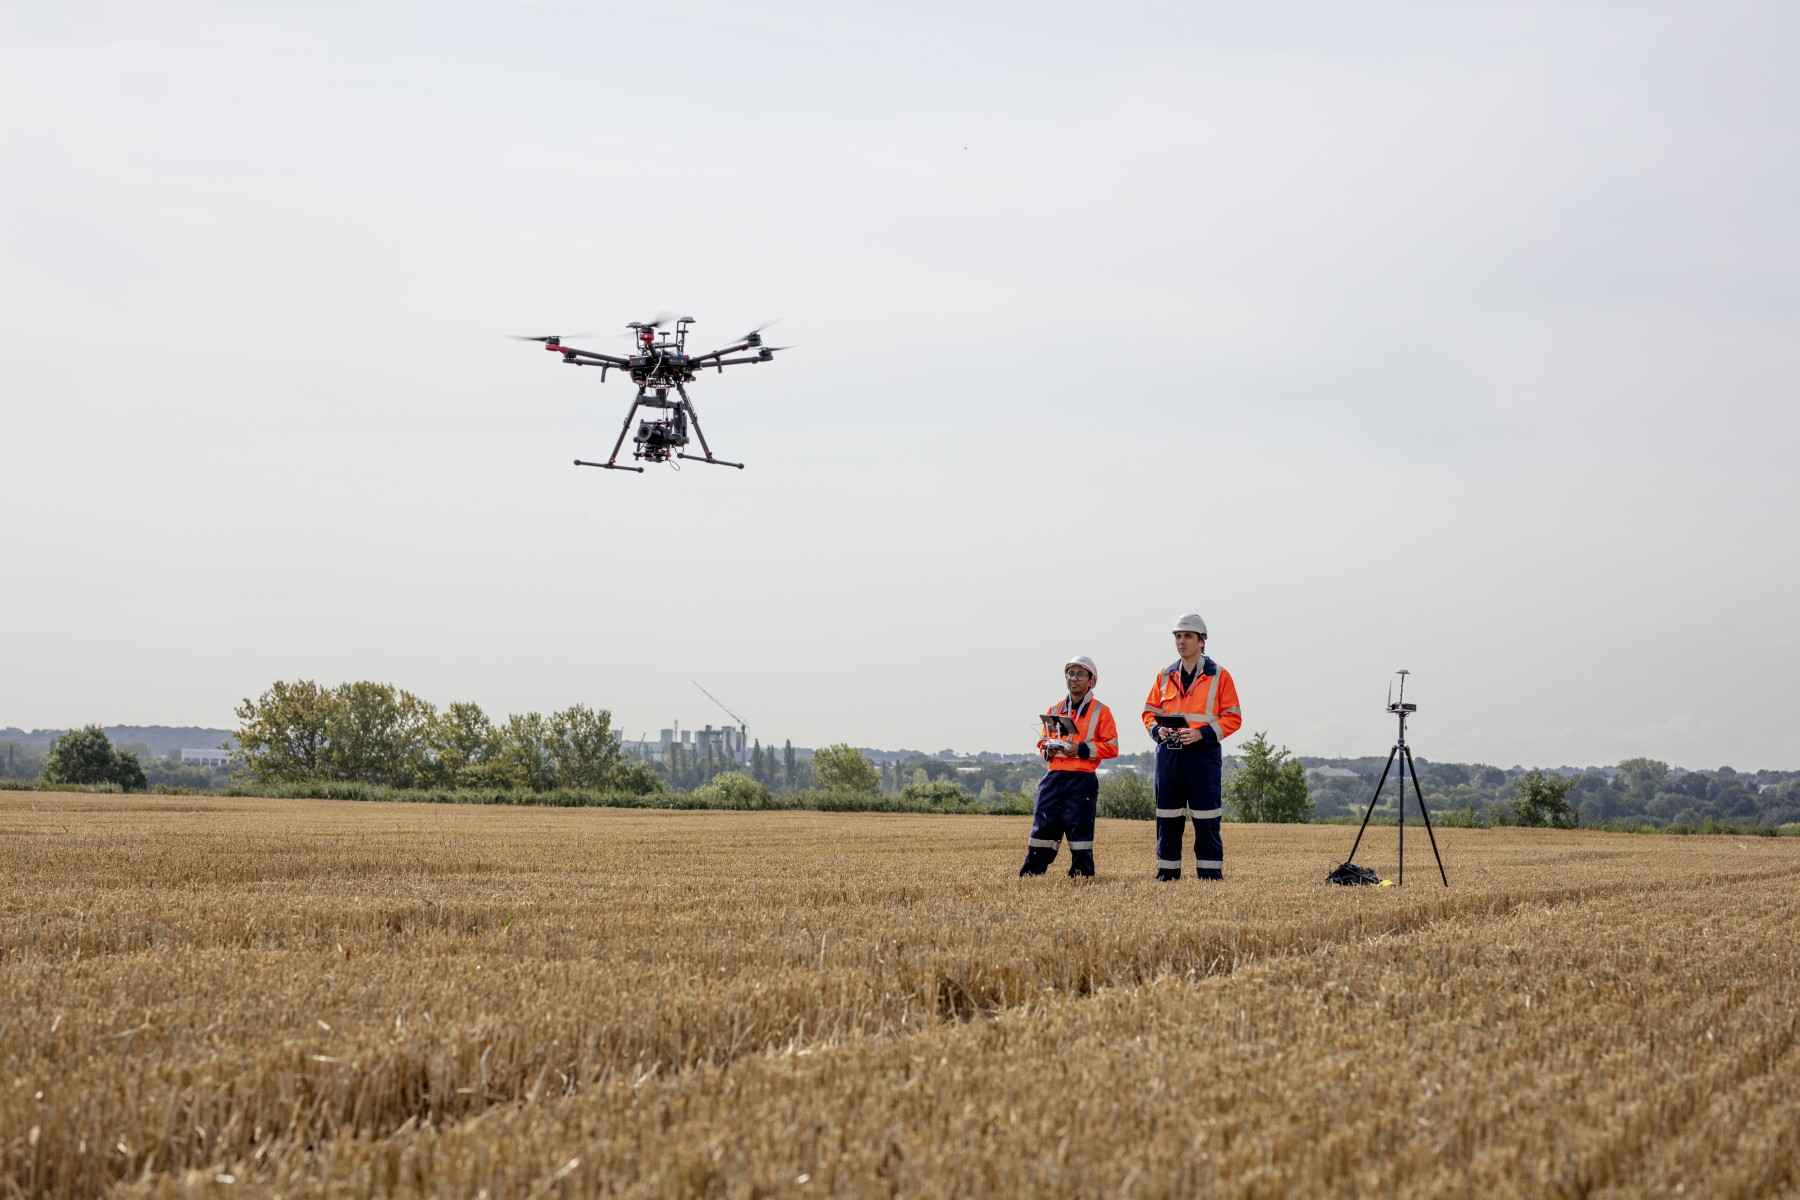 Drone for infrastructure inspection - National Grid2